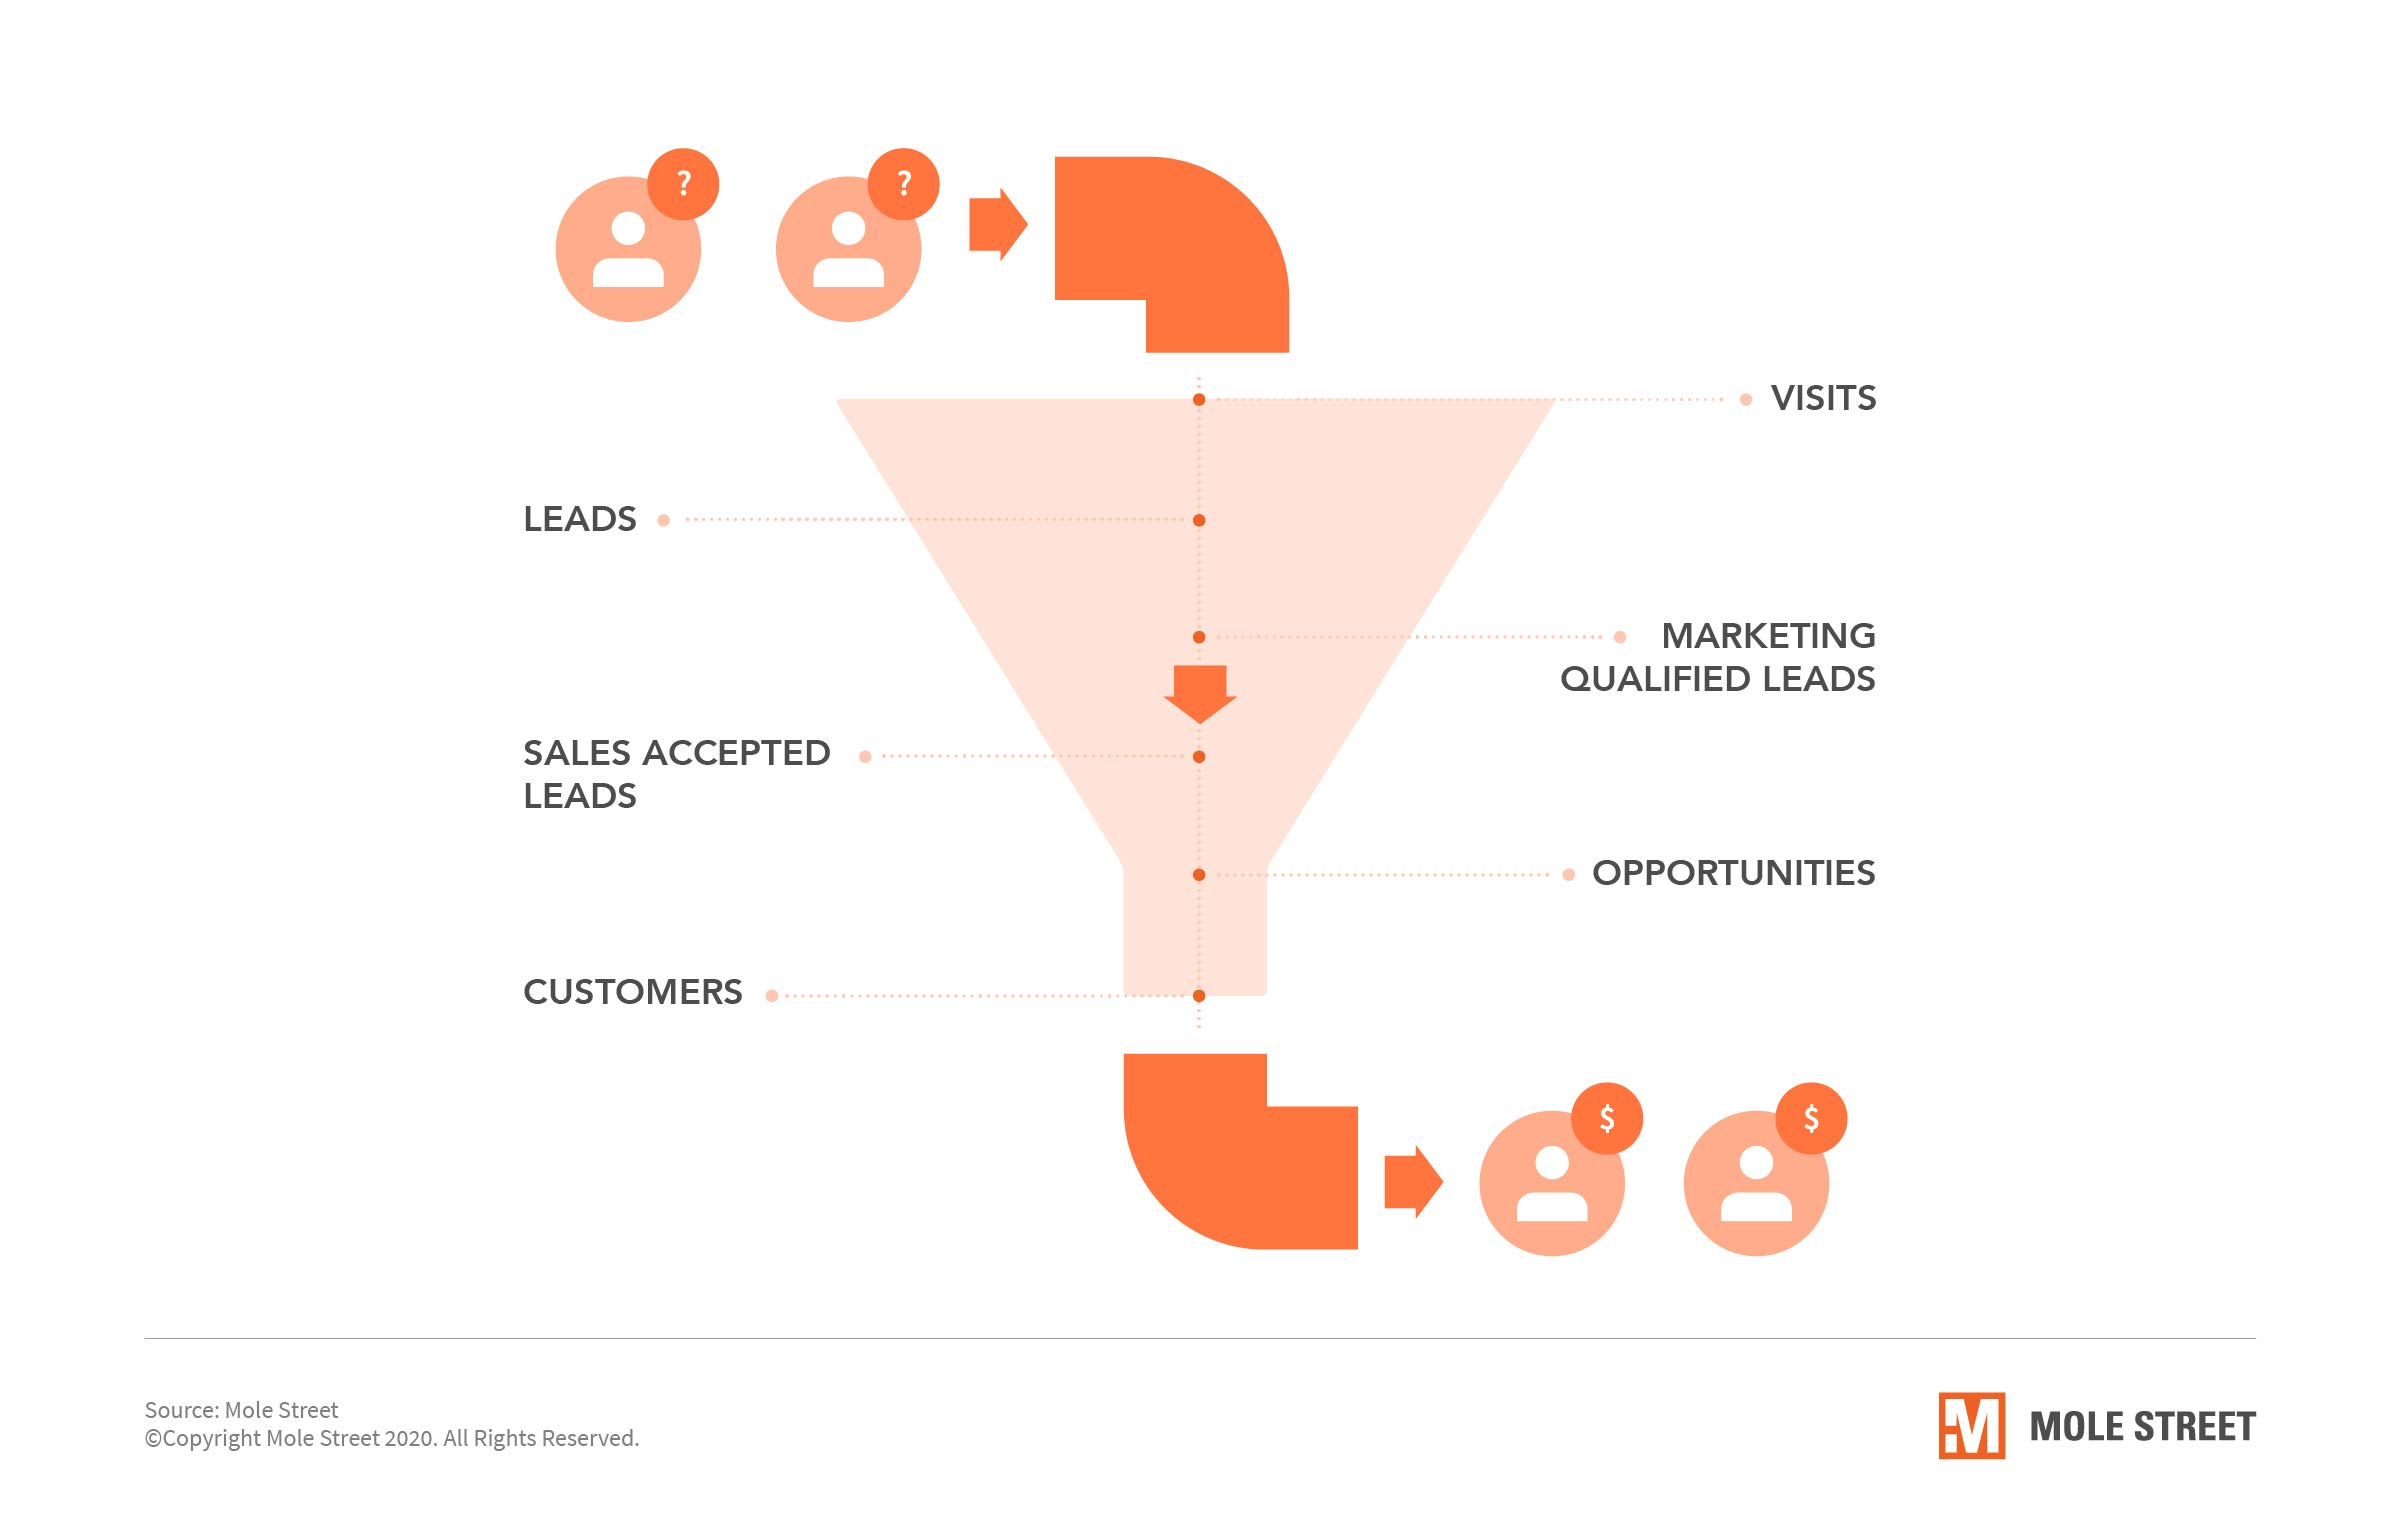 Workflows-Help-Send-Customers-Down-the-Purchase-Funnel-SEPT-IMAGES-1